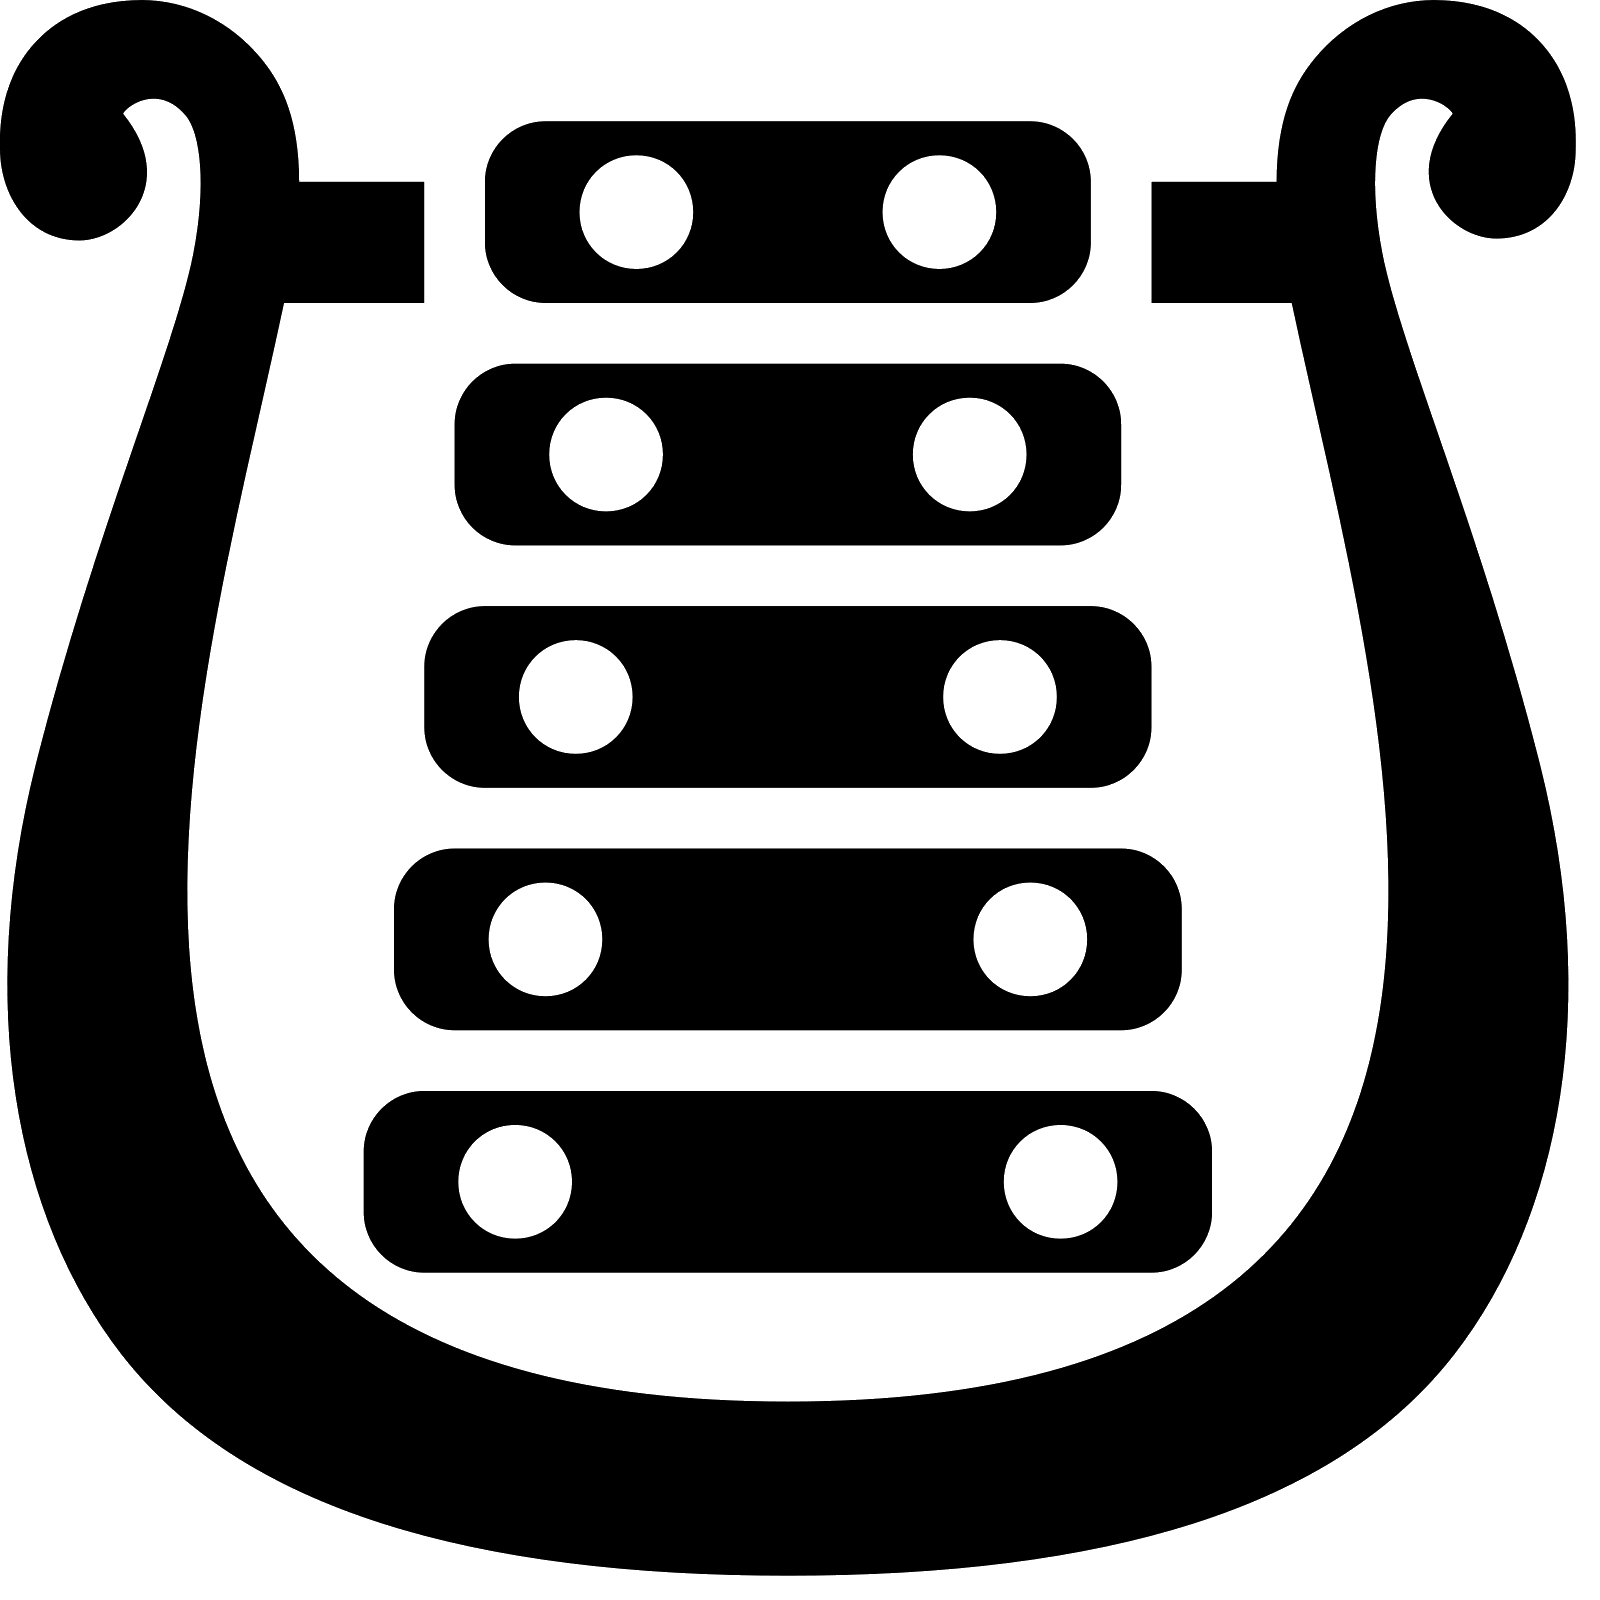 Lyre png 8 » PNG Image